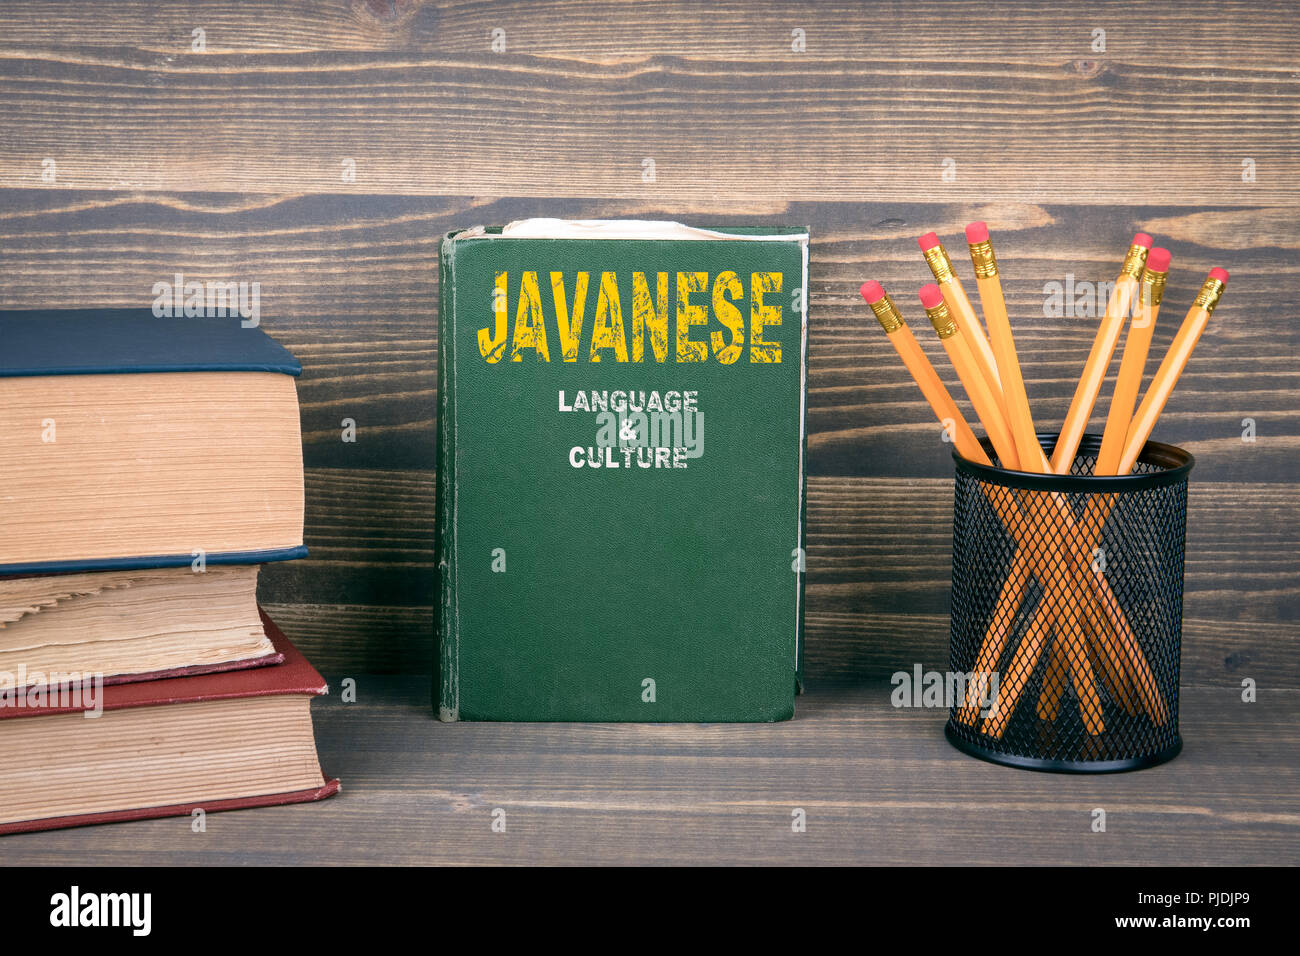 Javanese language and culture - Stock Image